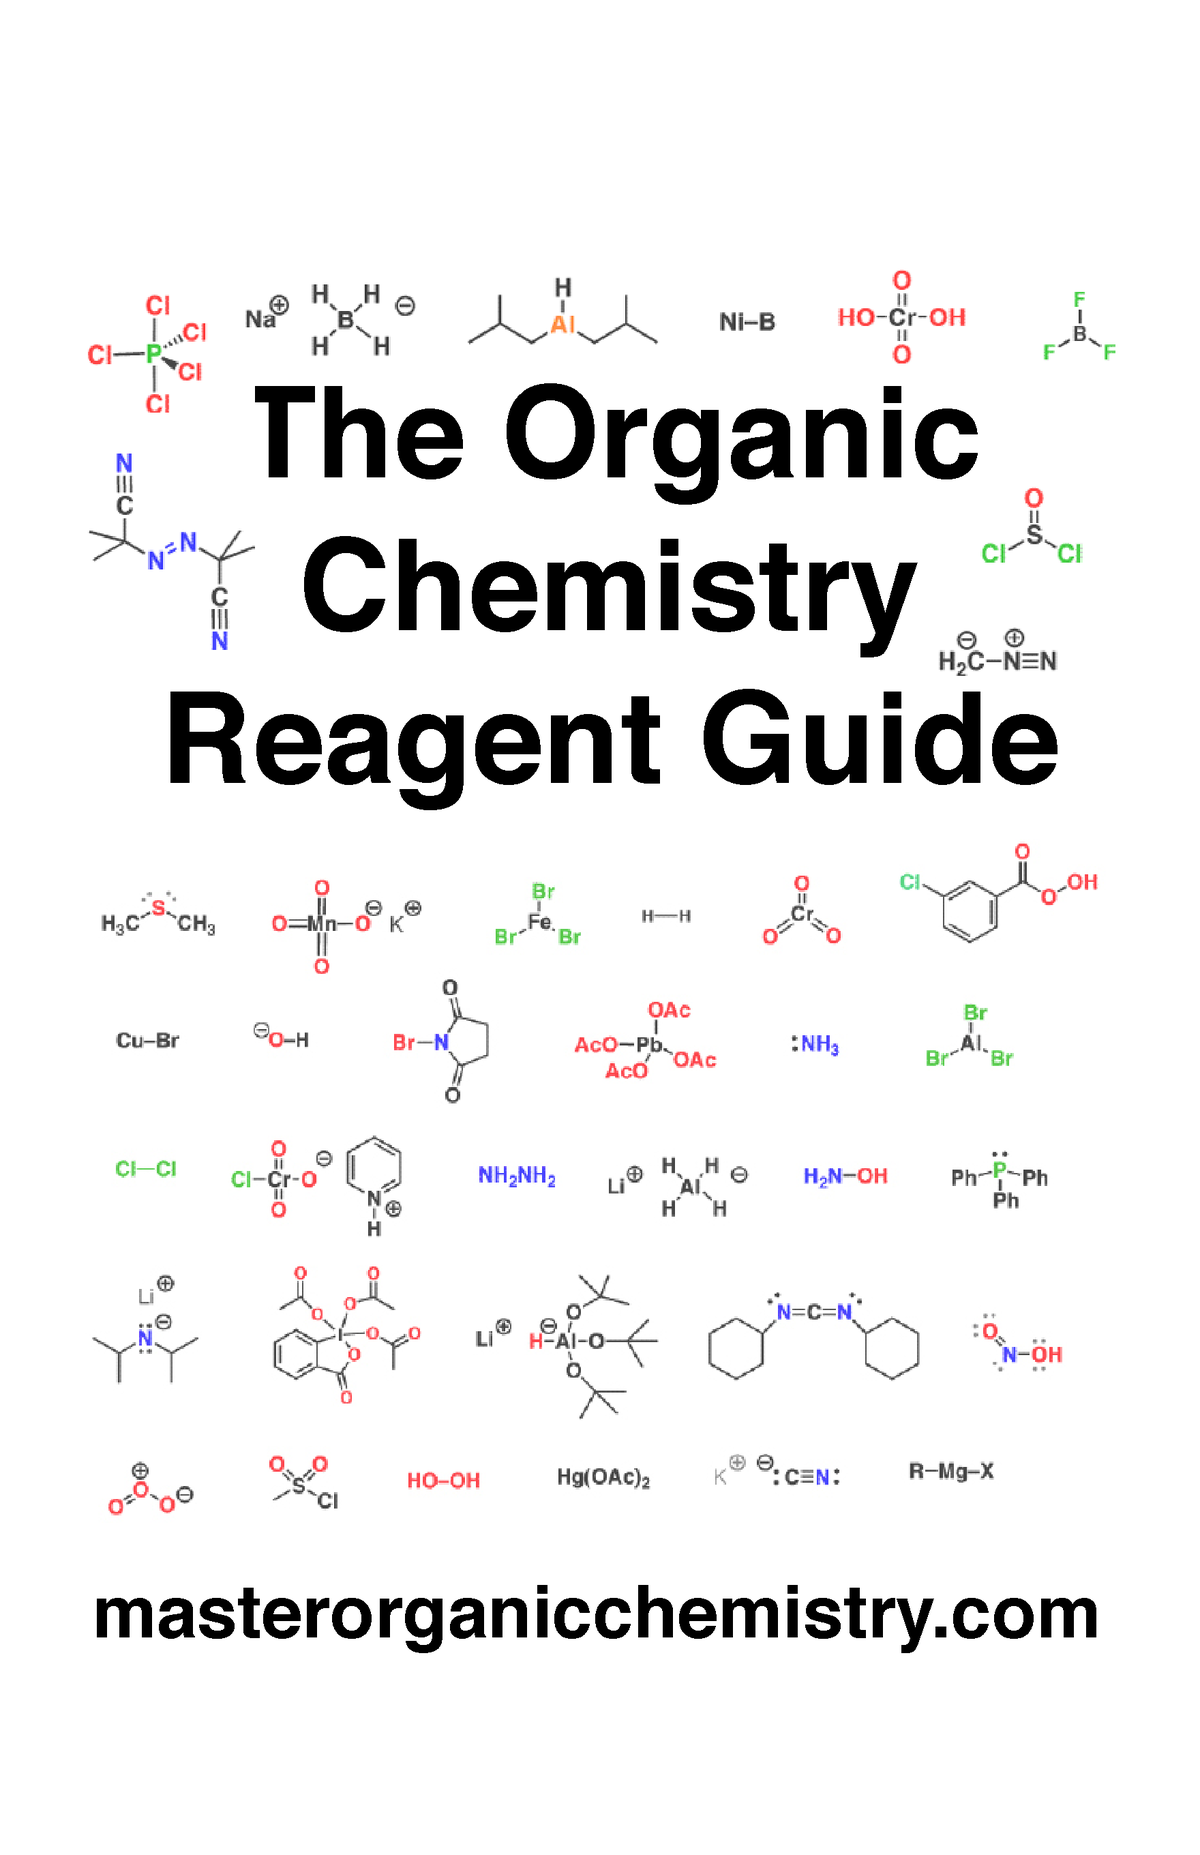 Mastering Organic Chemistry Reagent Guide by James - StuDocu